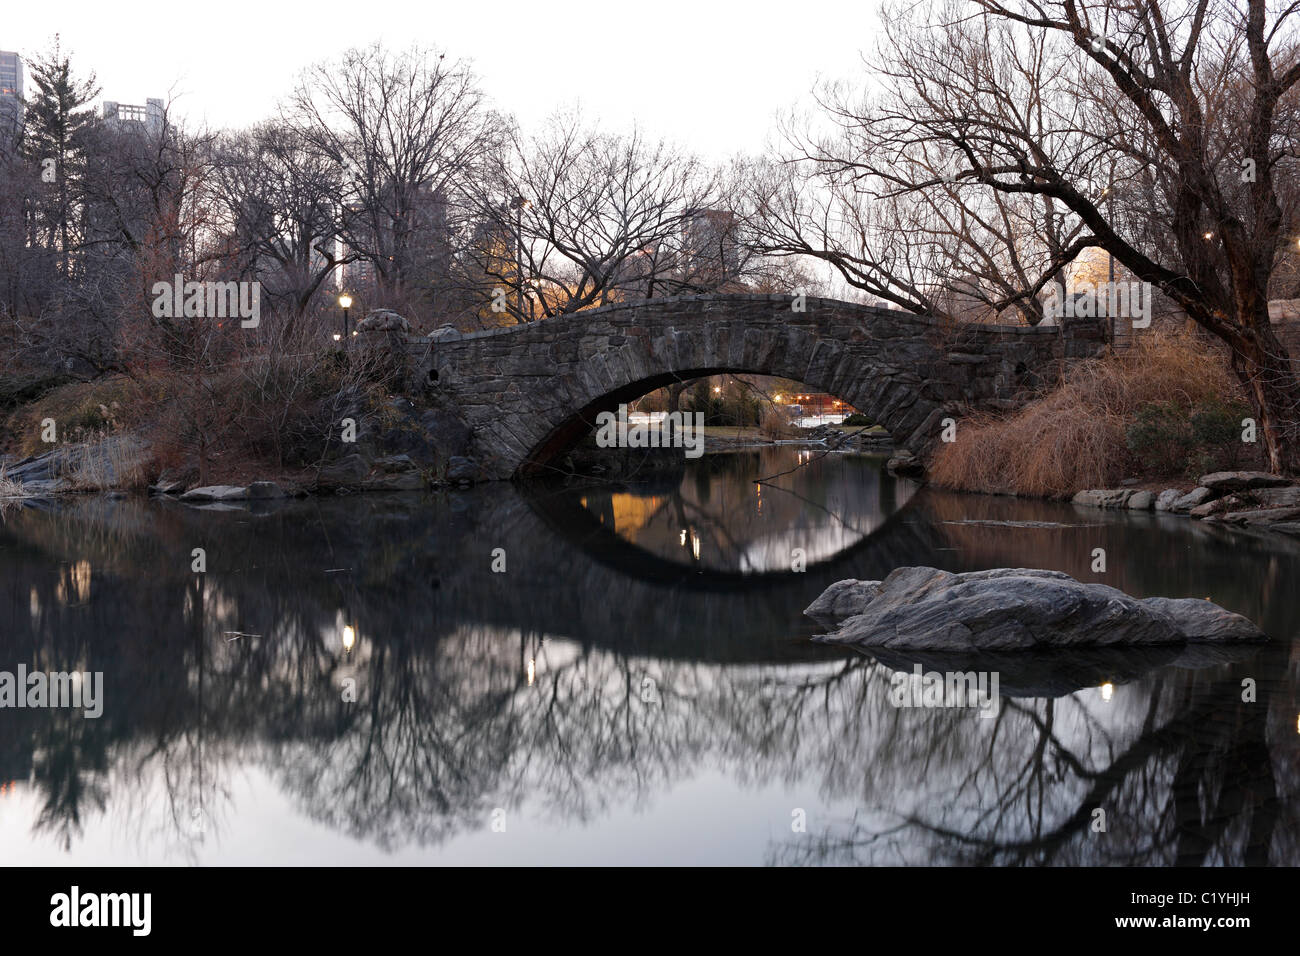 Gapstow Bridge as seen from the Pond with reflections in the water in New York's Central Park in Winter - Stock Image